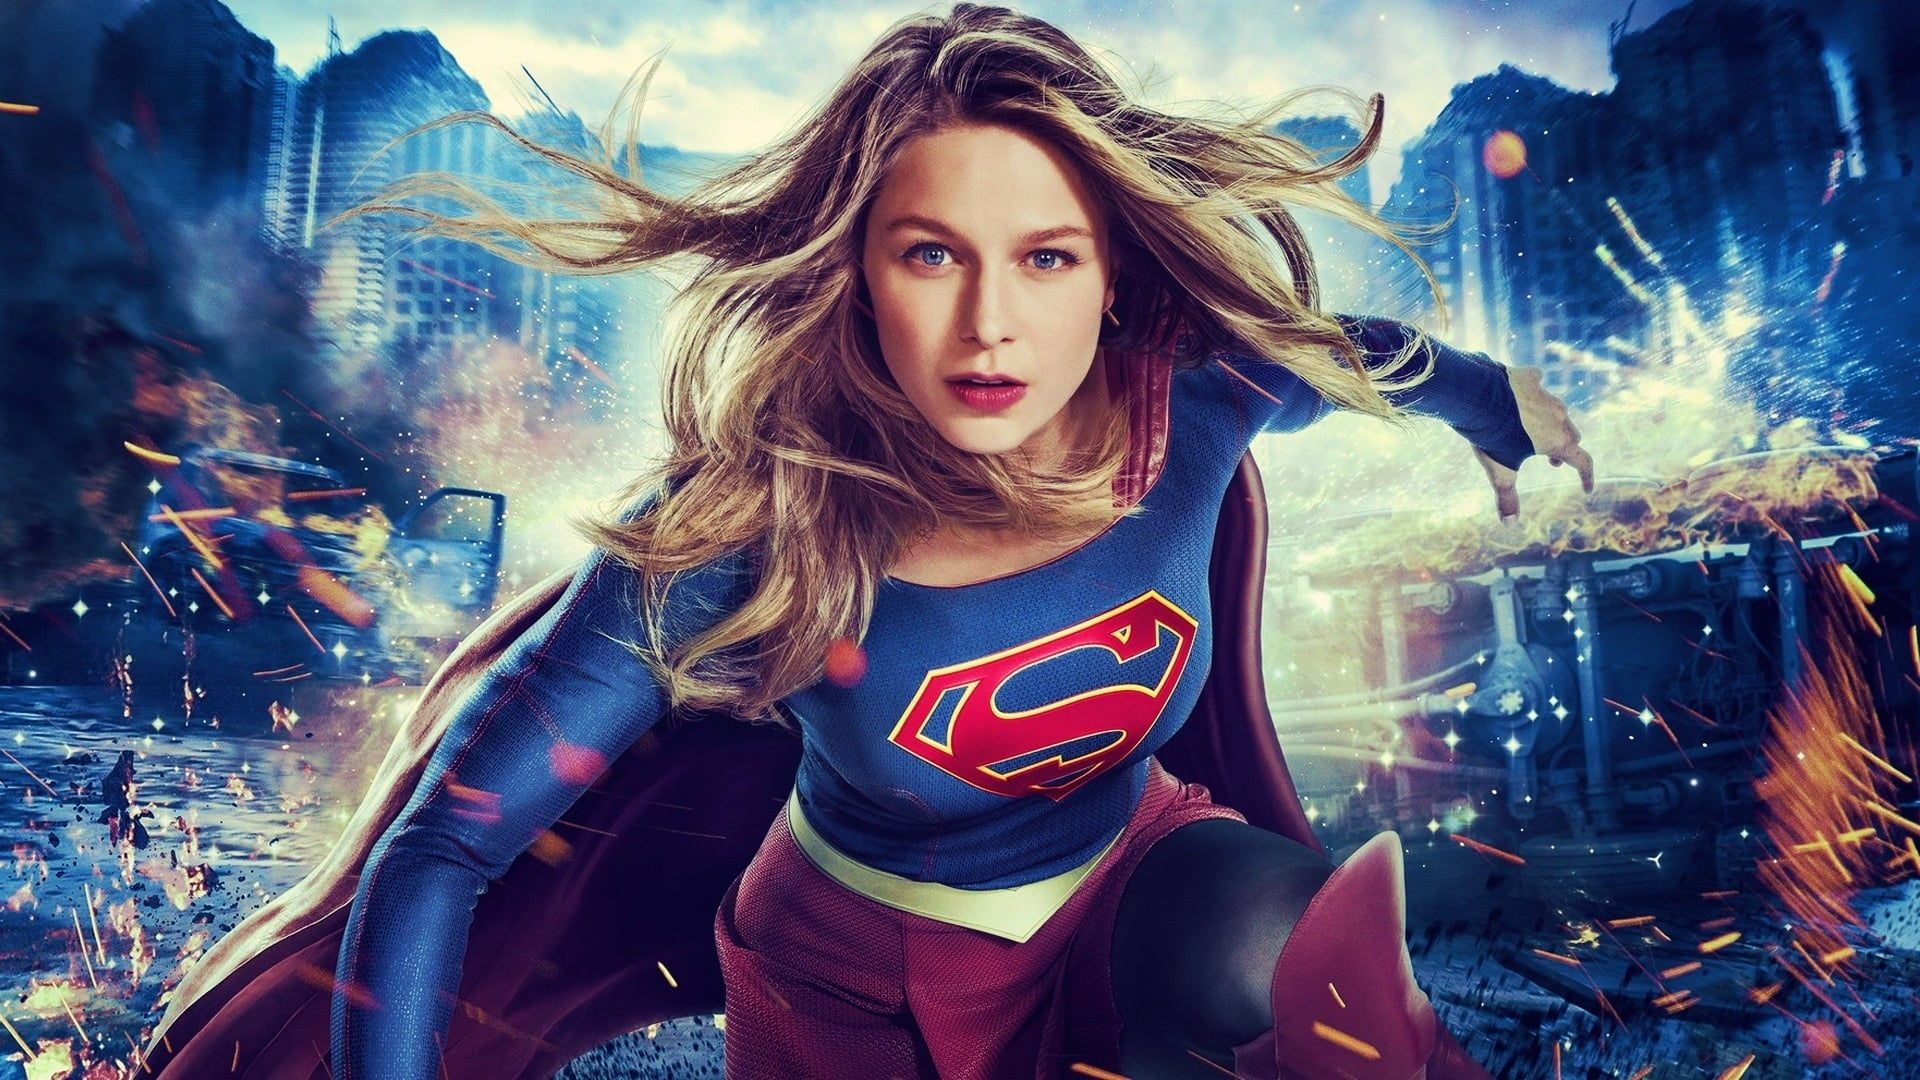 Supergirl - Season 1